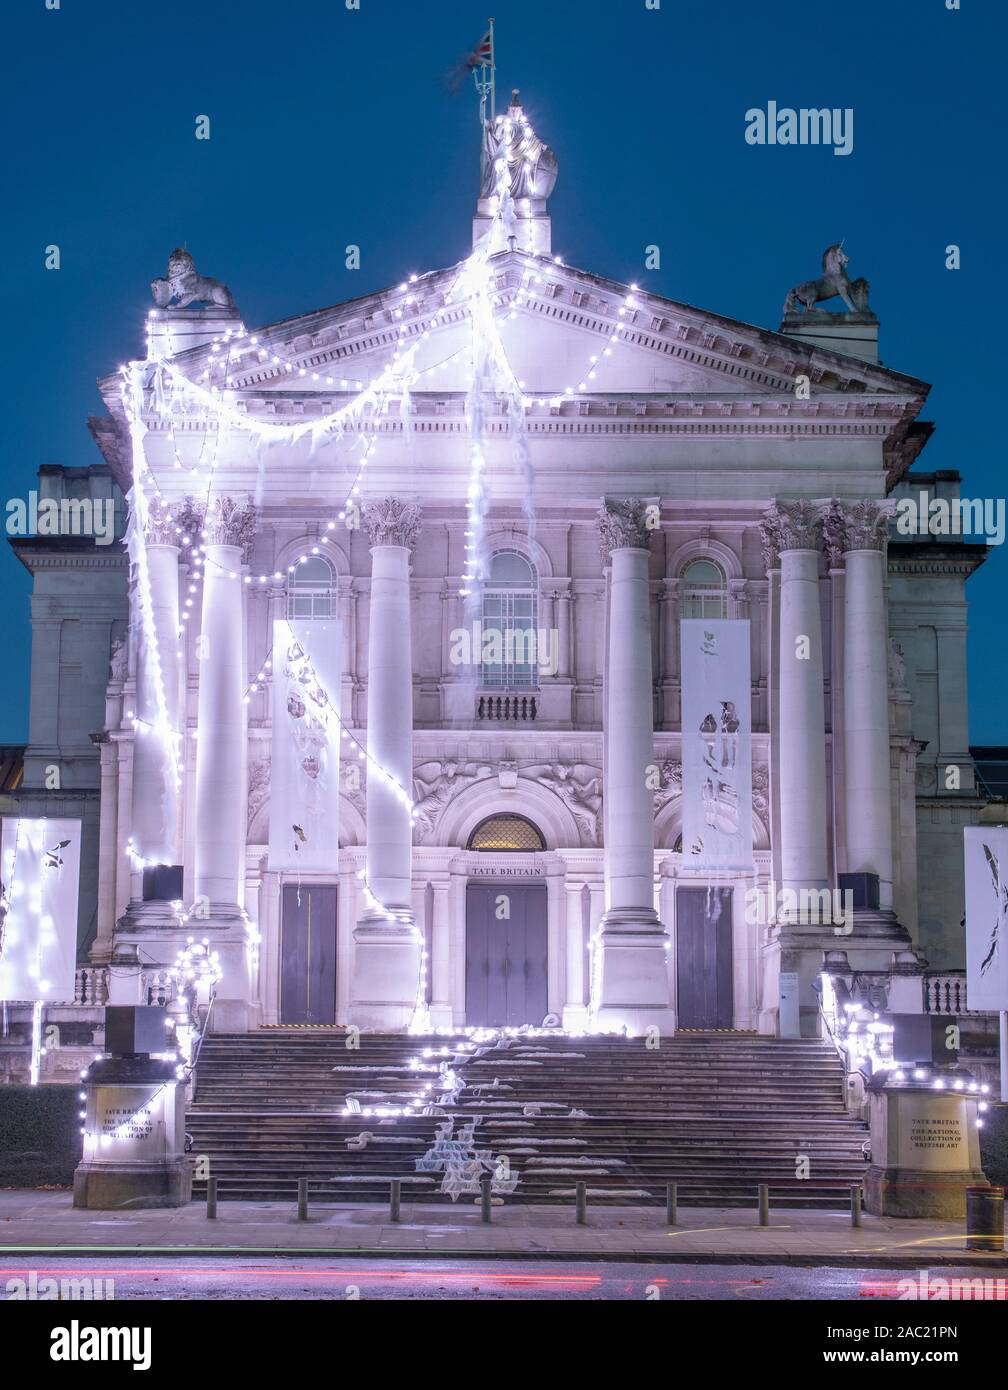 tate-britain-london-uk-29th-november-2019-the-new-tate-britain-winter-commission-devised-by-the-renowned-british-artistanne-hardy-has-transformedtate-britains-iconic-facade-into-a-marooned-temple-in-an-exploration-of-the-natural-rhythms-of-the-earth-tides-and-the-winter-solstice-unveiled-for-the-first-time-early-morning-of-29th-november-hardys-workwill-be-displayed-until26-january-2020-credit-malcolm-parkalamy-2AC21PN.jpg